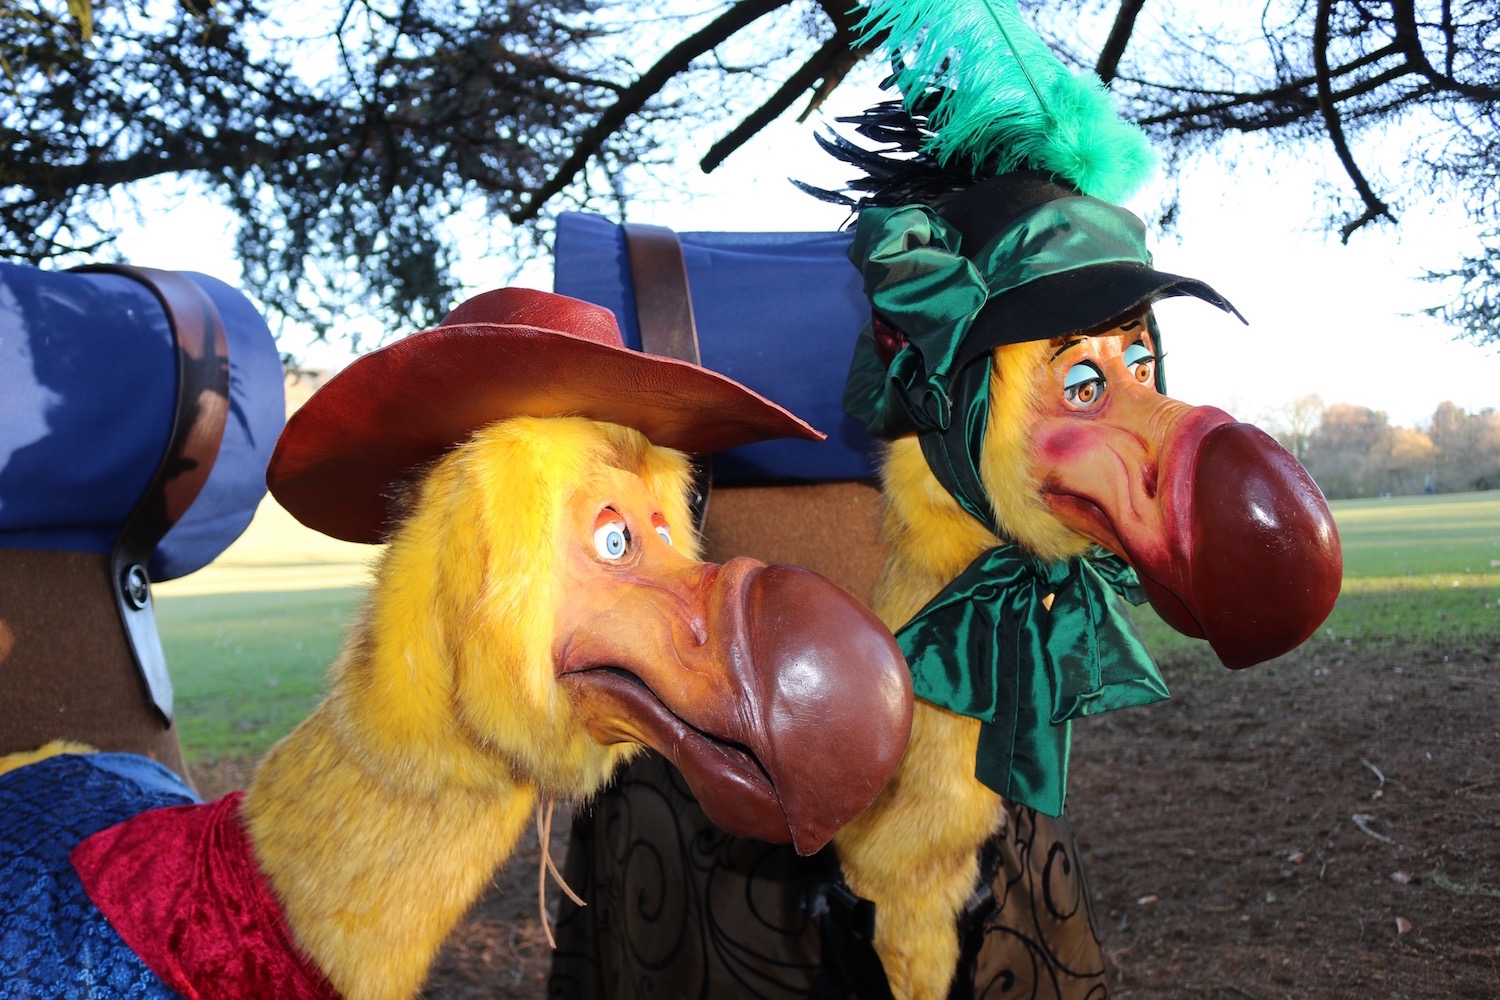 Animatronic puppet Dodo costume characters built for Blacking Chine- Land of Imagination